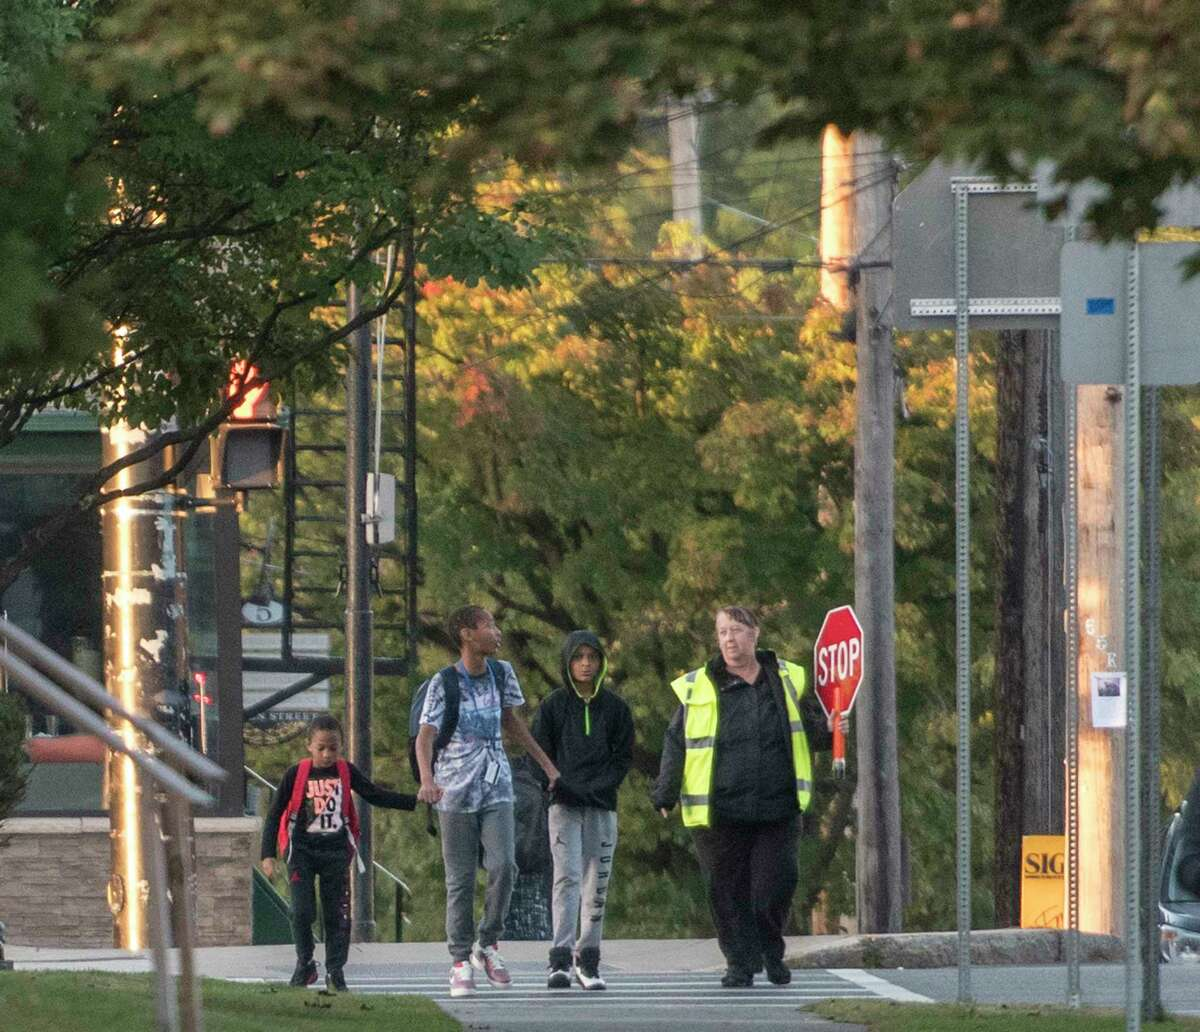 A crossing guard walks with students on their way to Pine Hills Elementary School on National Walk to School Day Wednesday Oct. 4, 2017 in Albany, N.Y. (Skip Dickstein/Times Union)